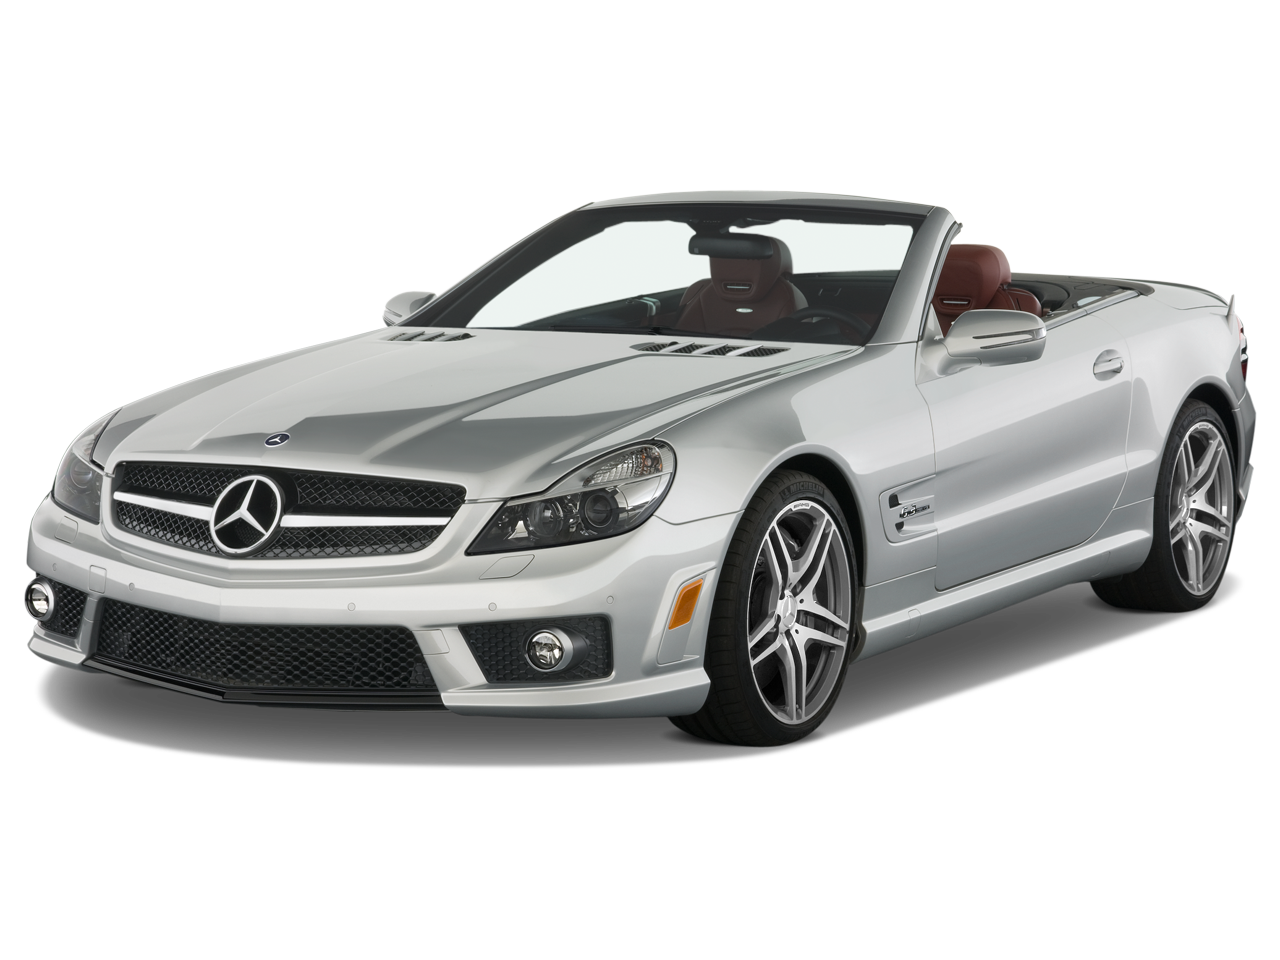 2009 mercedes benz sl63 amg roadster mercedes benz. Black Bedroom Furniture Sets. Home Design Ideas